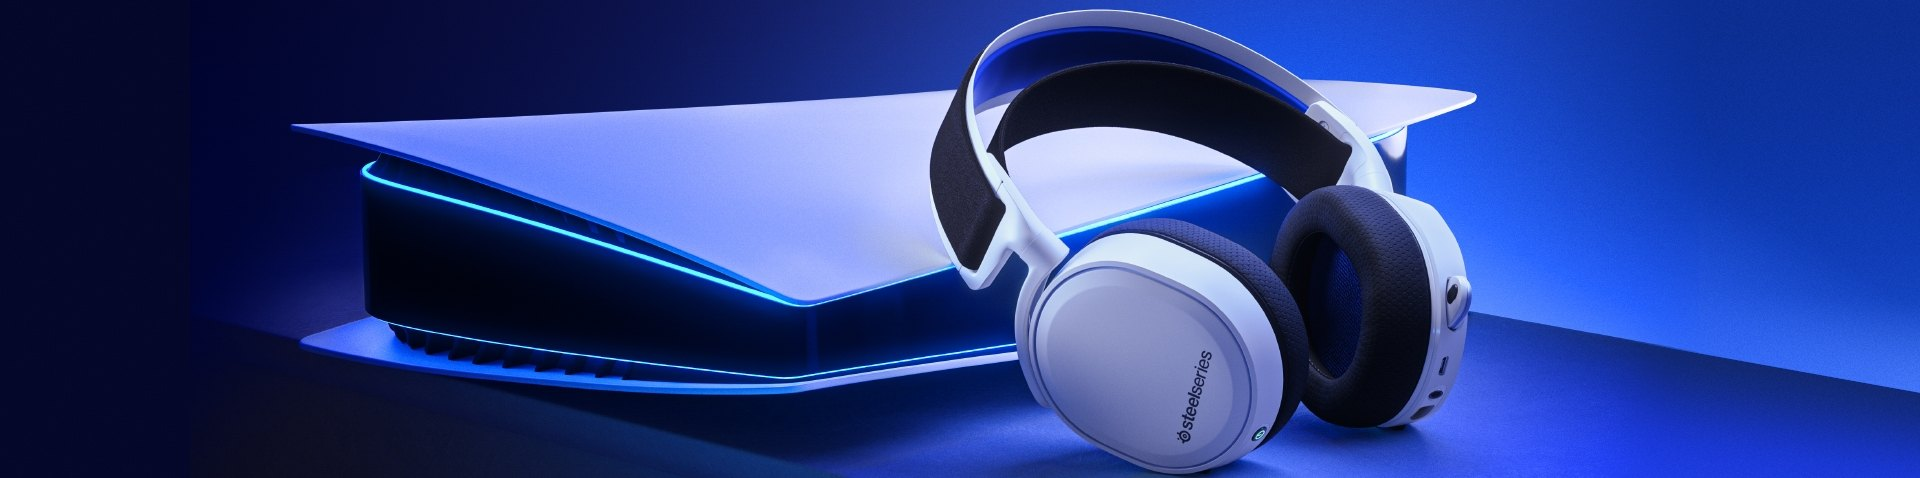 Image of Arctis 7P headset laying against the next Gen PlayStation 5 console